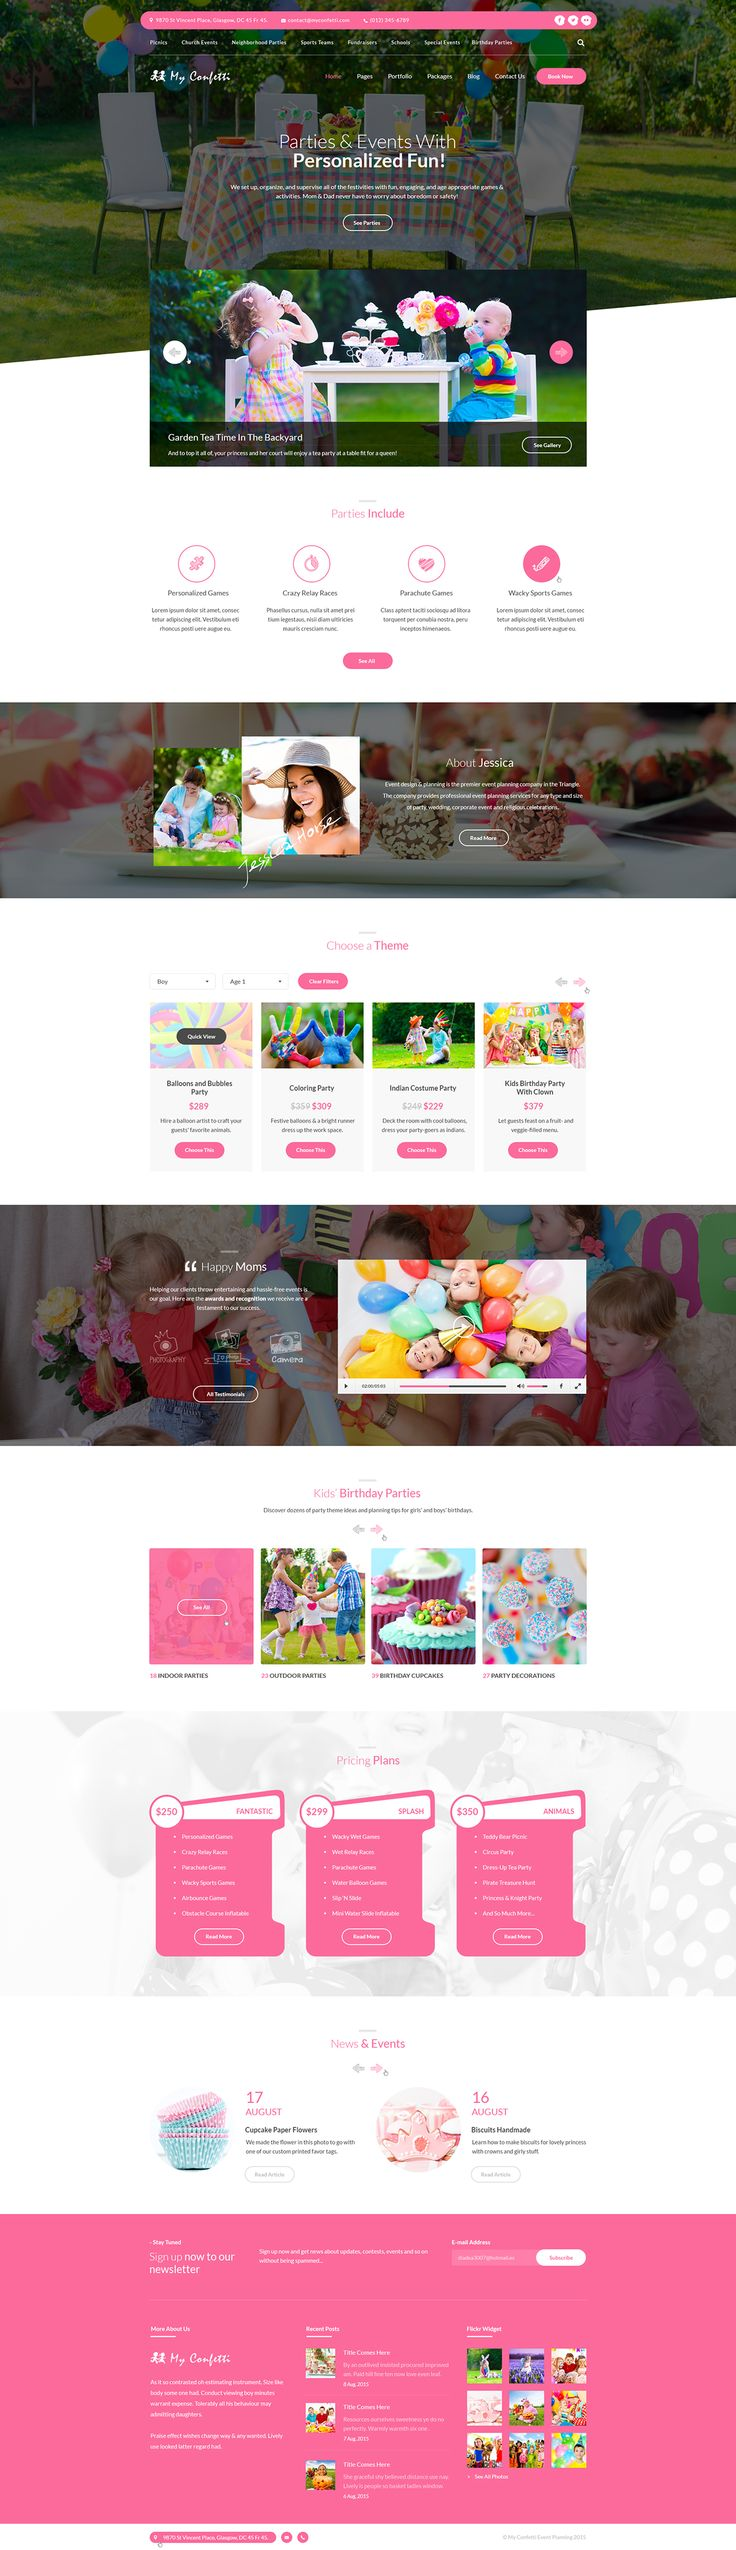 My Confetti - Kids Party Planner PSD Template on Behance